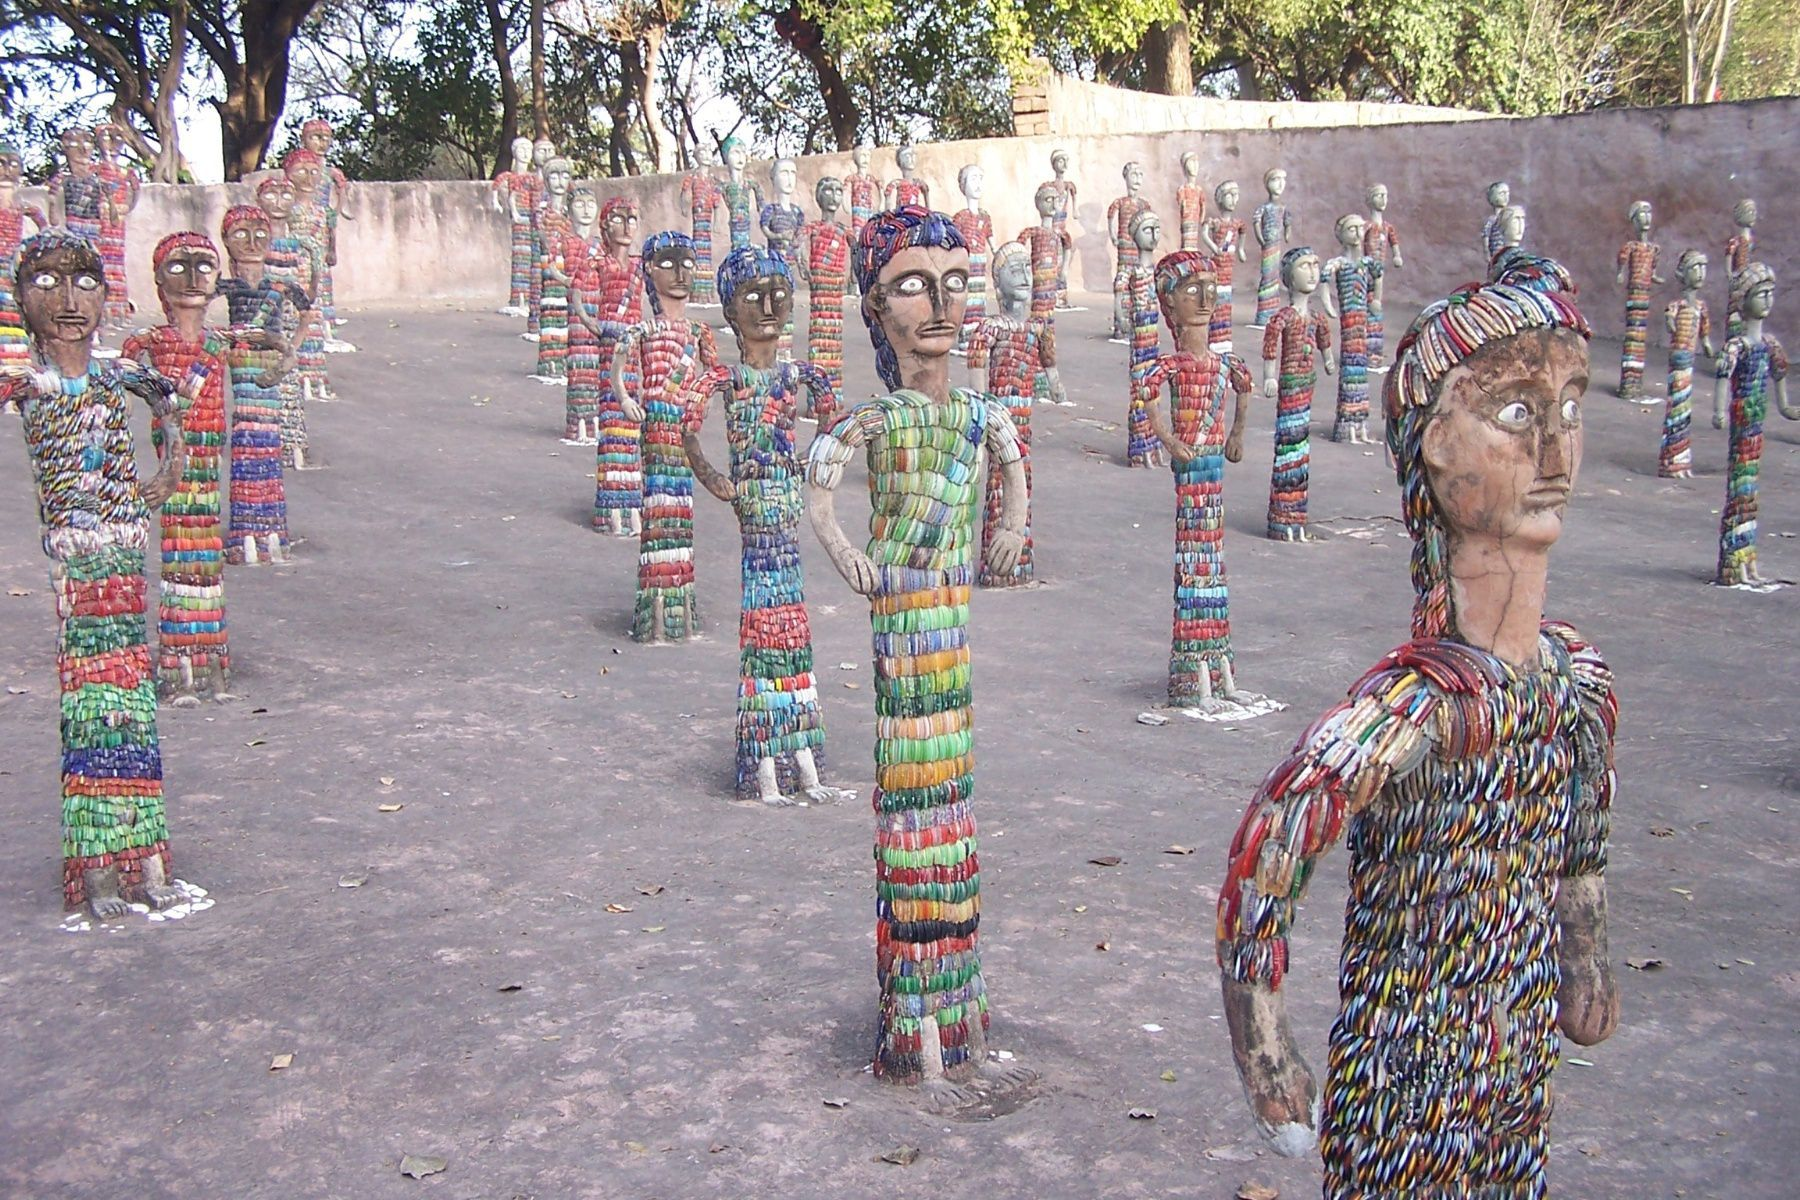 Handigarh Is A Beautiful City With Beautiful Surroundings And A